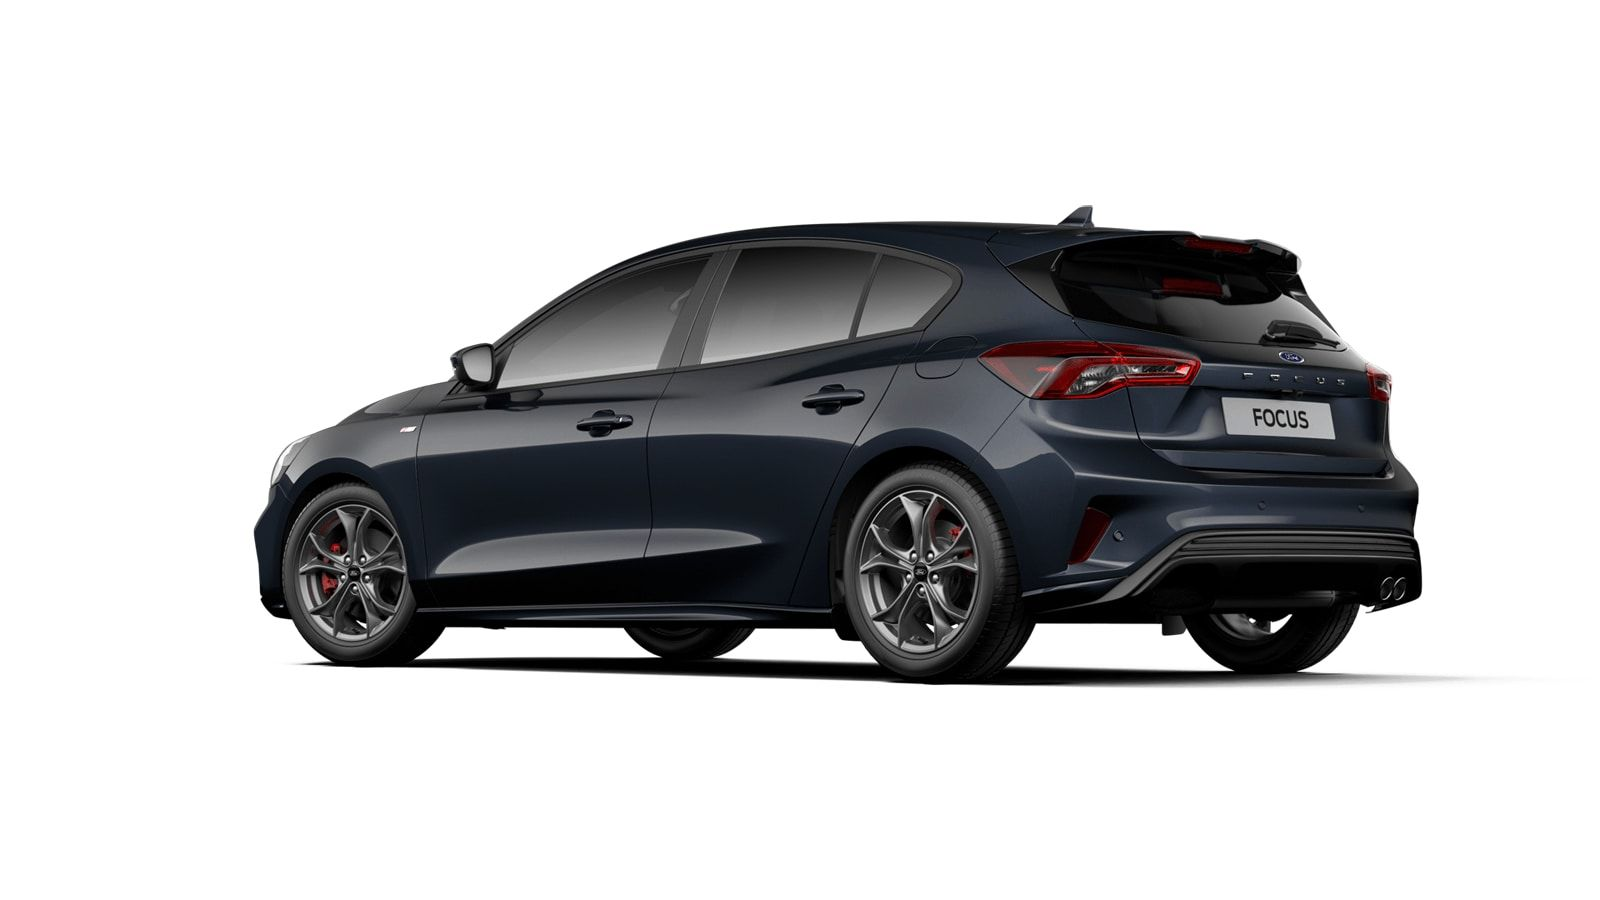 """Nieuw Ford Focus ST-Line X 1.0 EcoBoost 125ps A8 CL FCD - """"Panther Blue"""" Exclusieve metaalkleur 4"""